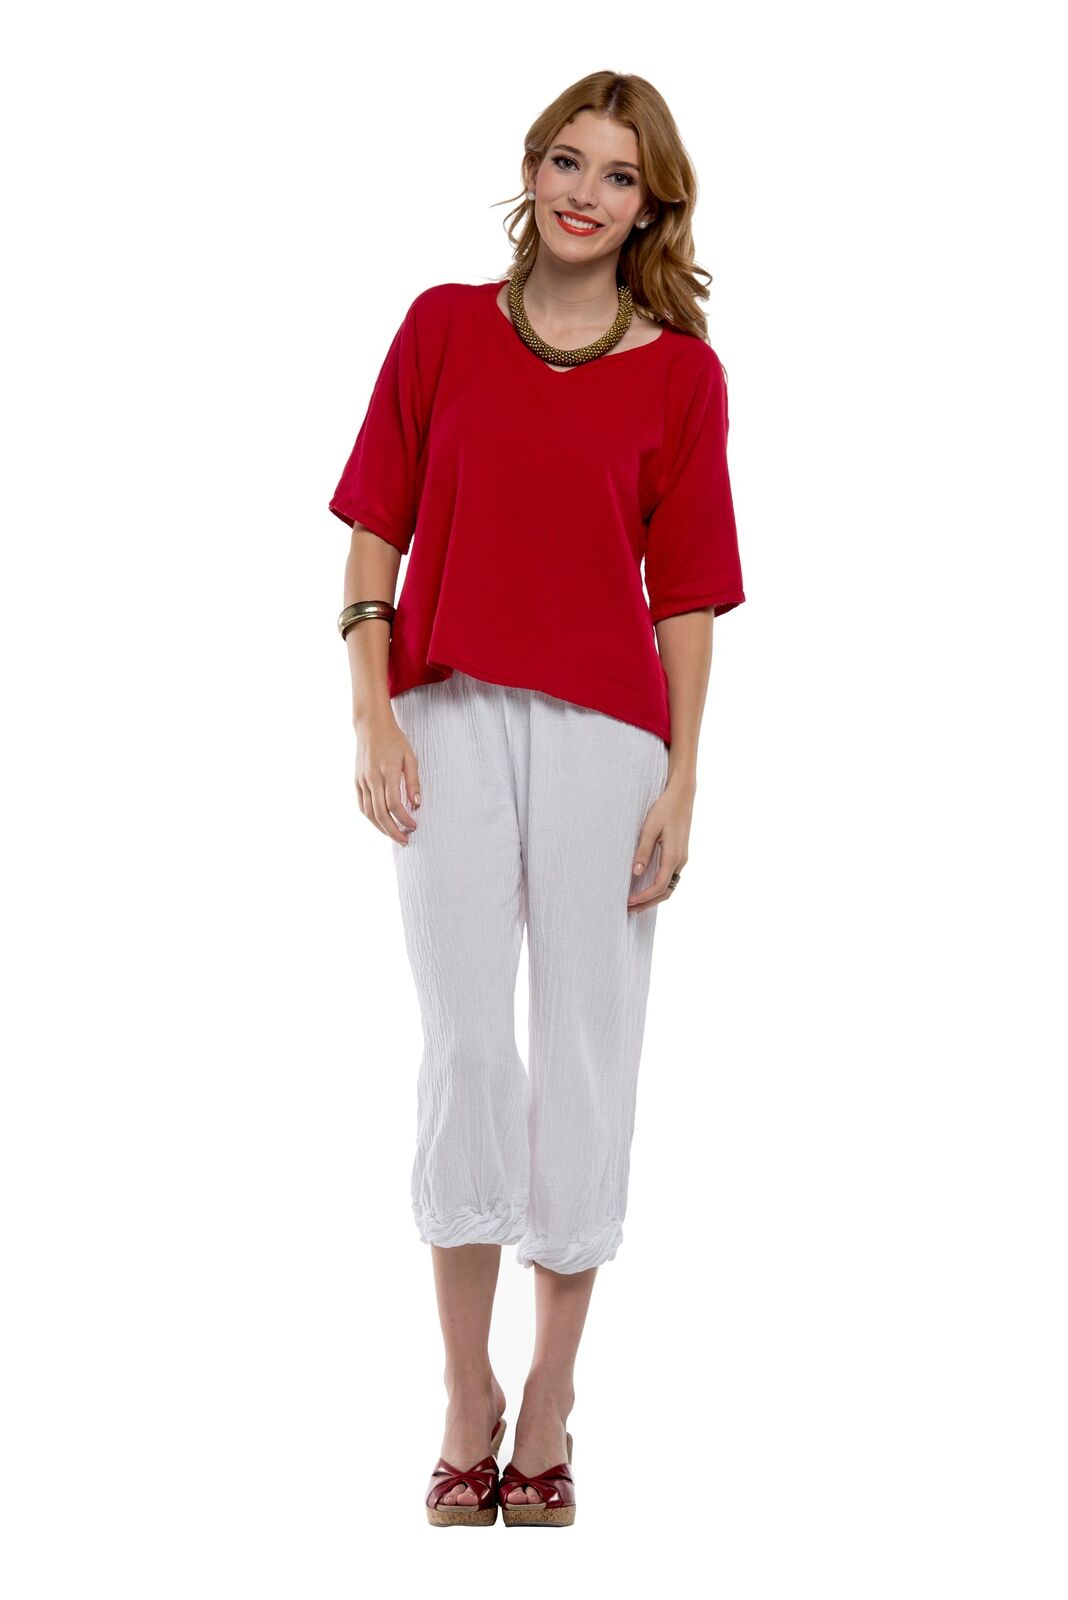 Oh My Gauze Crystal Pant 100% Comfortable Cotton Lagenlook Cropped